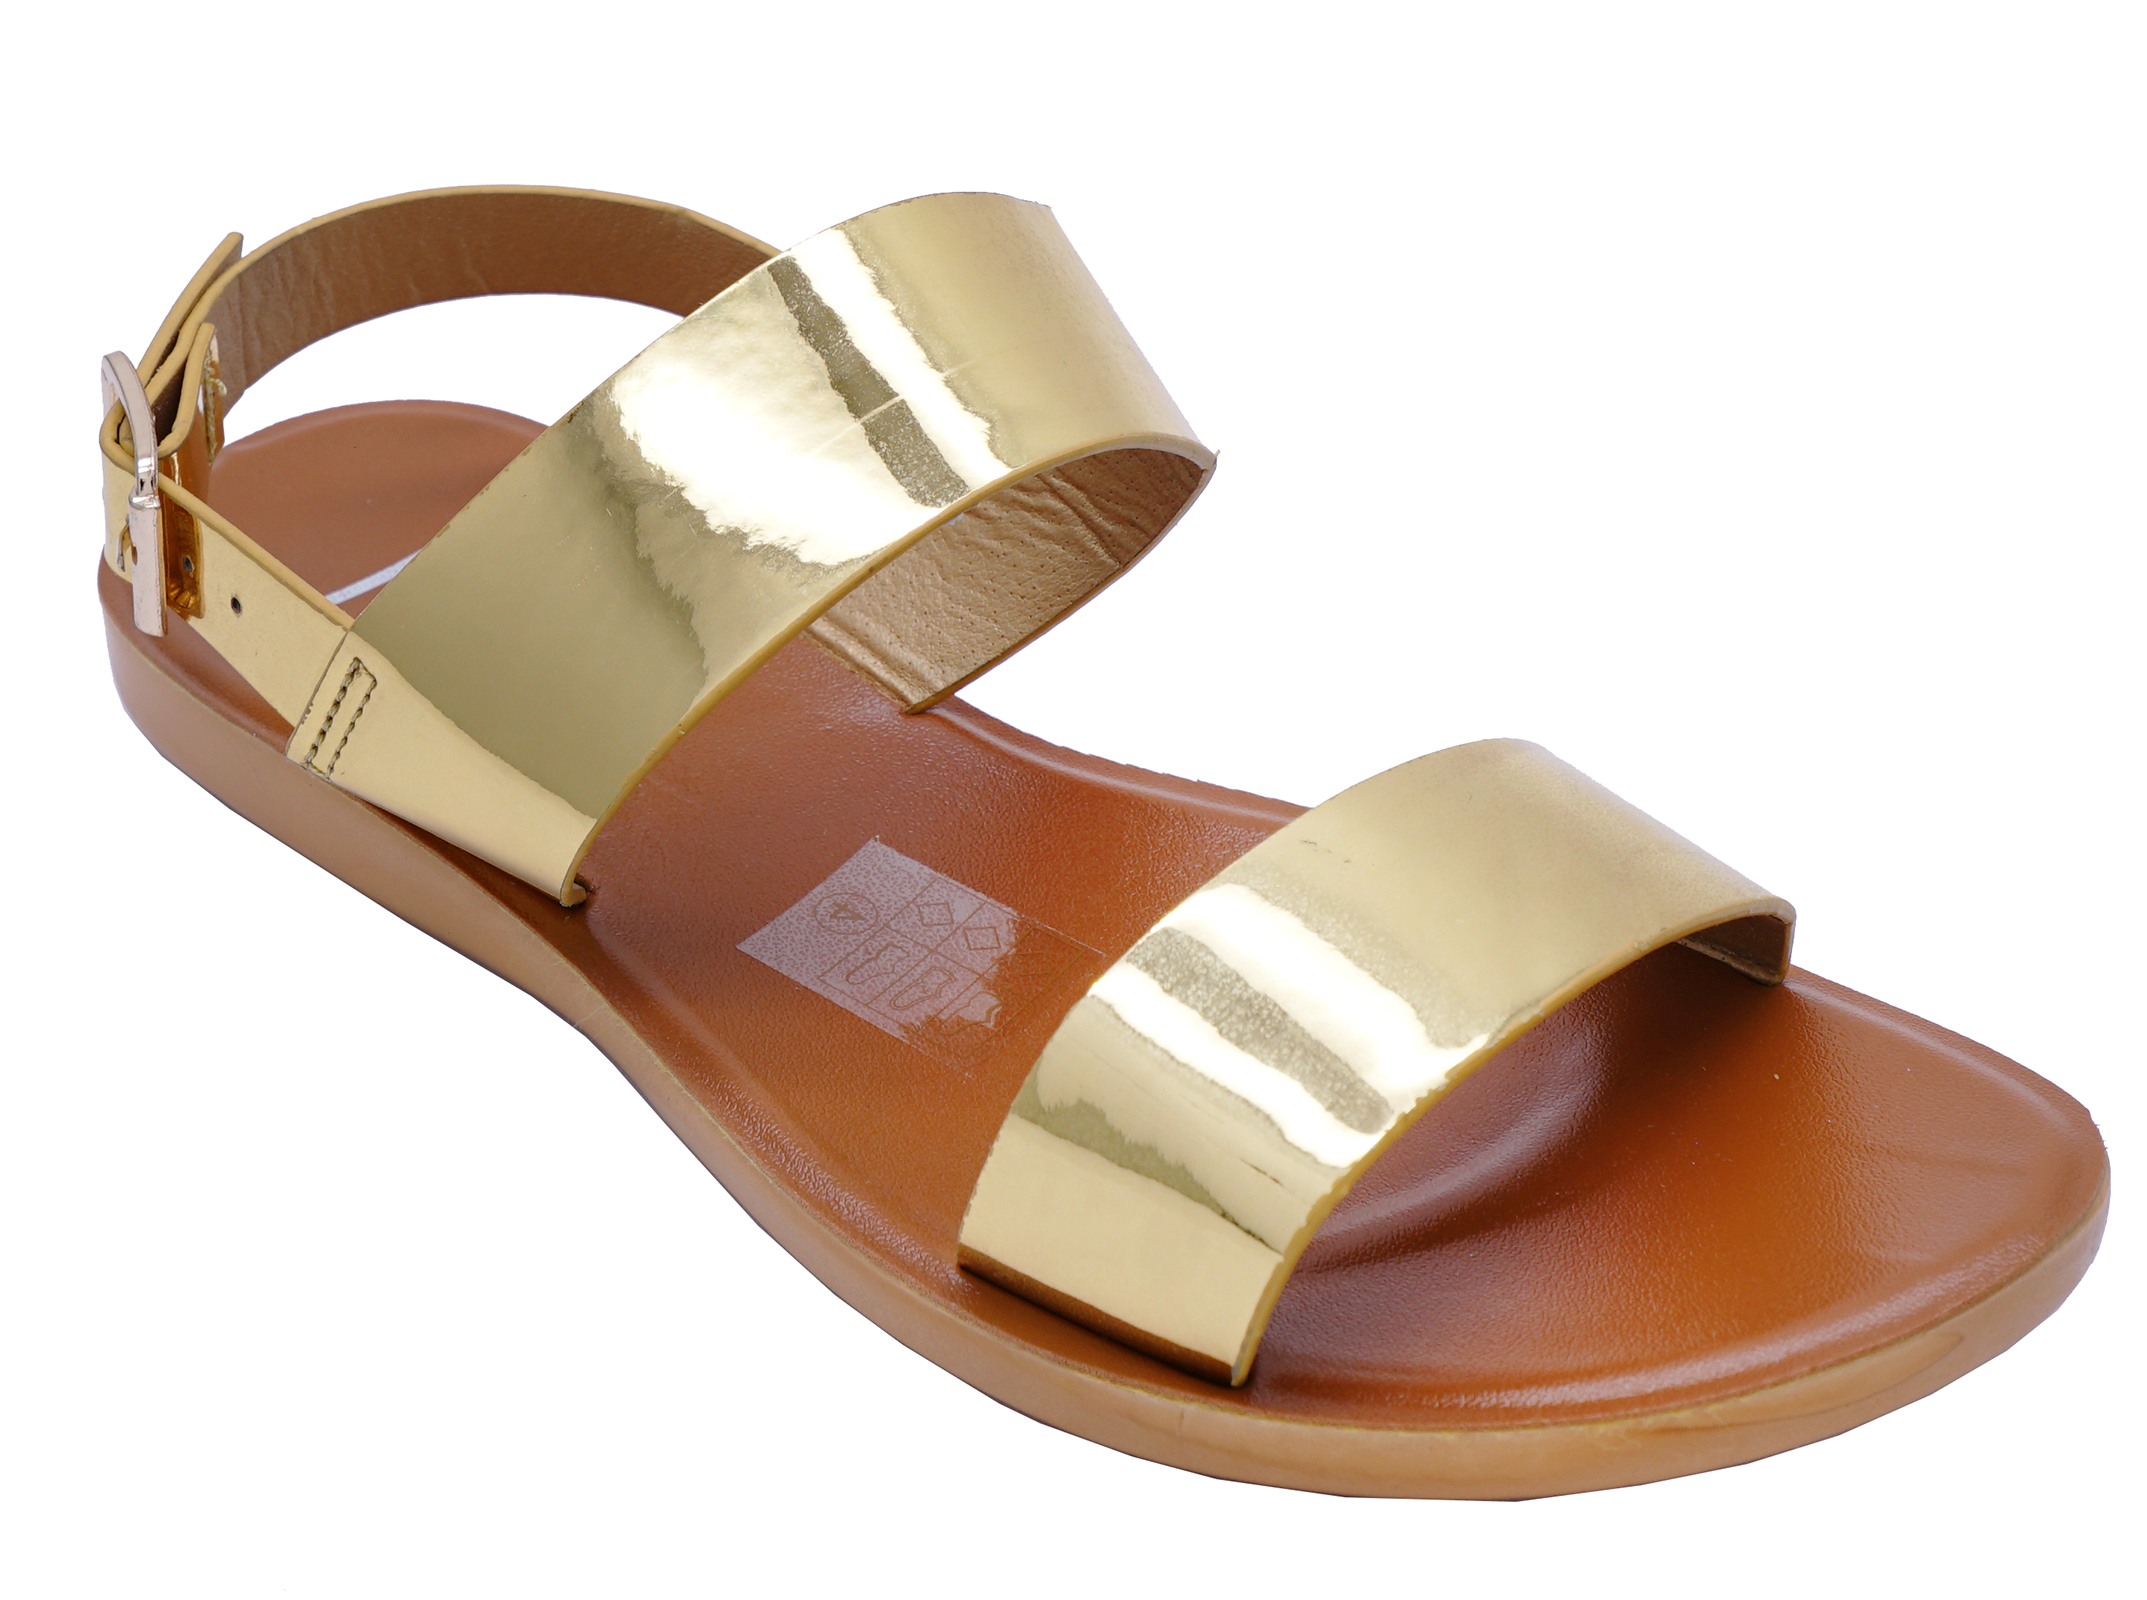 LADIES-FLAT-OPEN-TOE-GOLD-HOLIDAY-WALKING-SUMMER-CASUAL-SANDALS-SHOES-SIZES-3-8 thumbnail 6